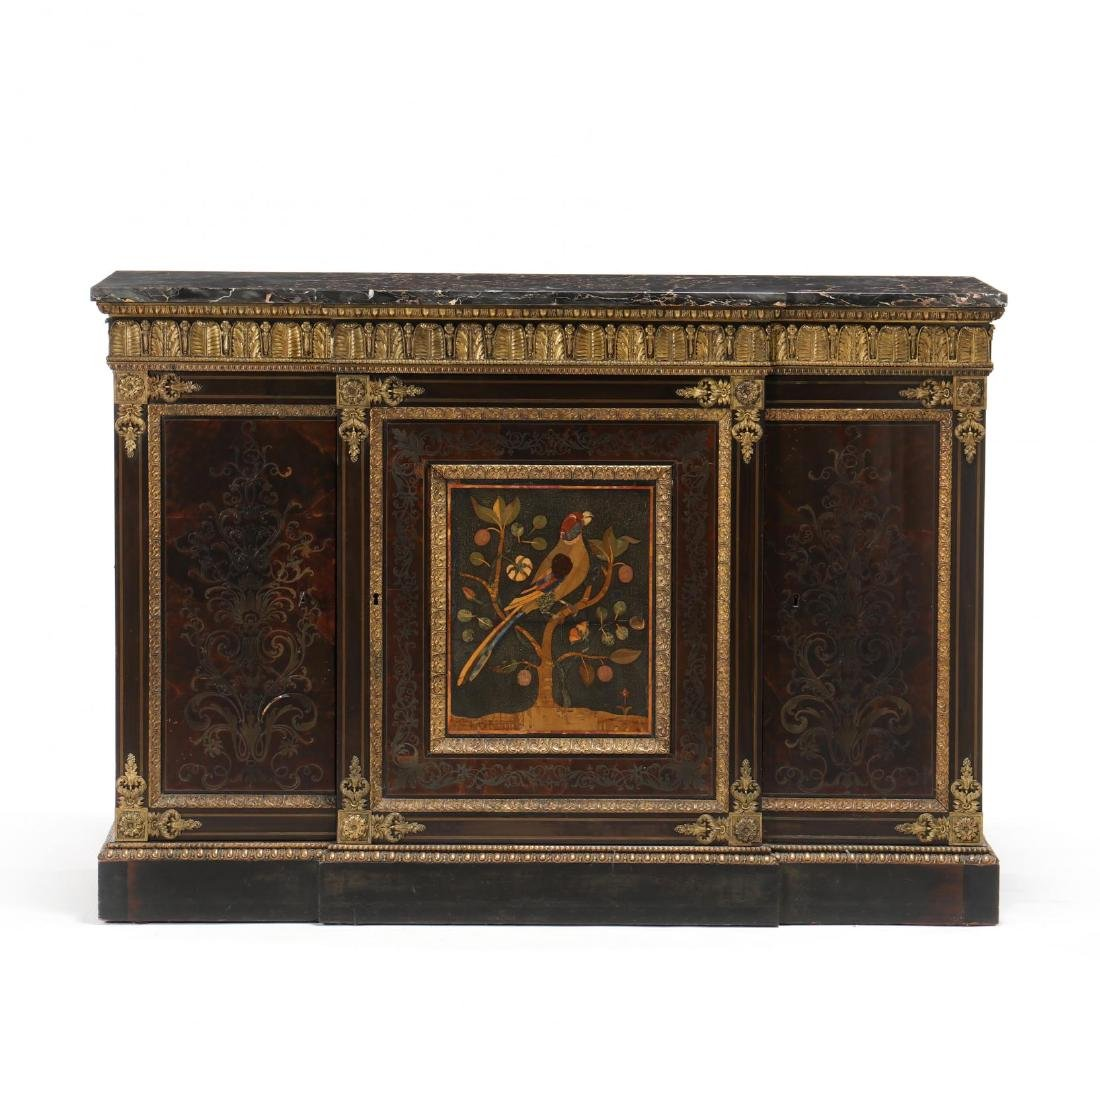 A Restauration Ormolu-Mounted Marble Top, Inlaid